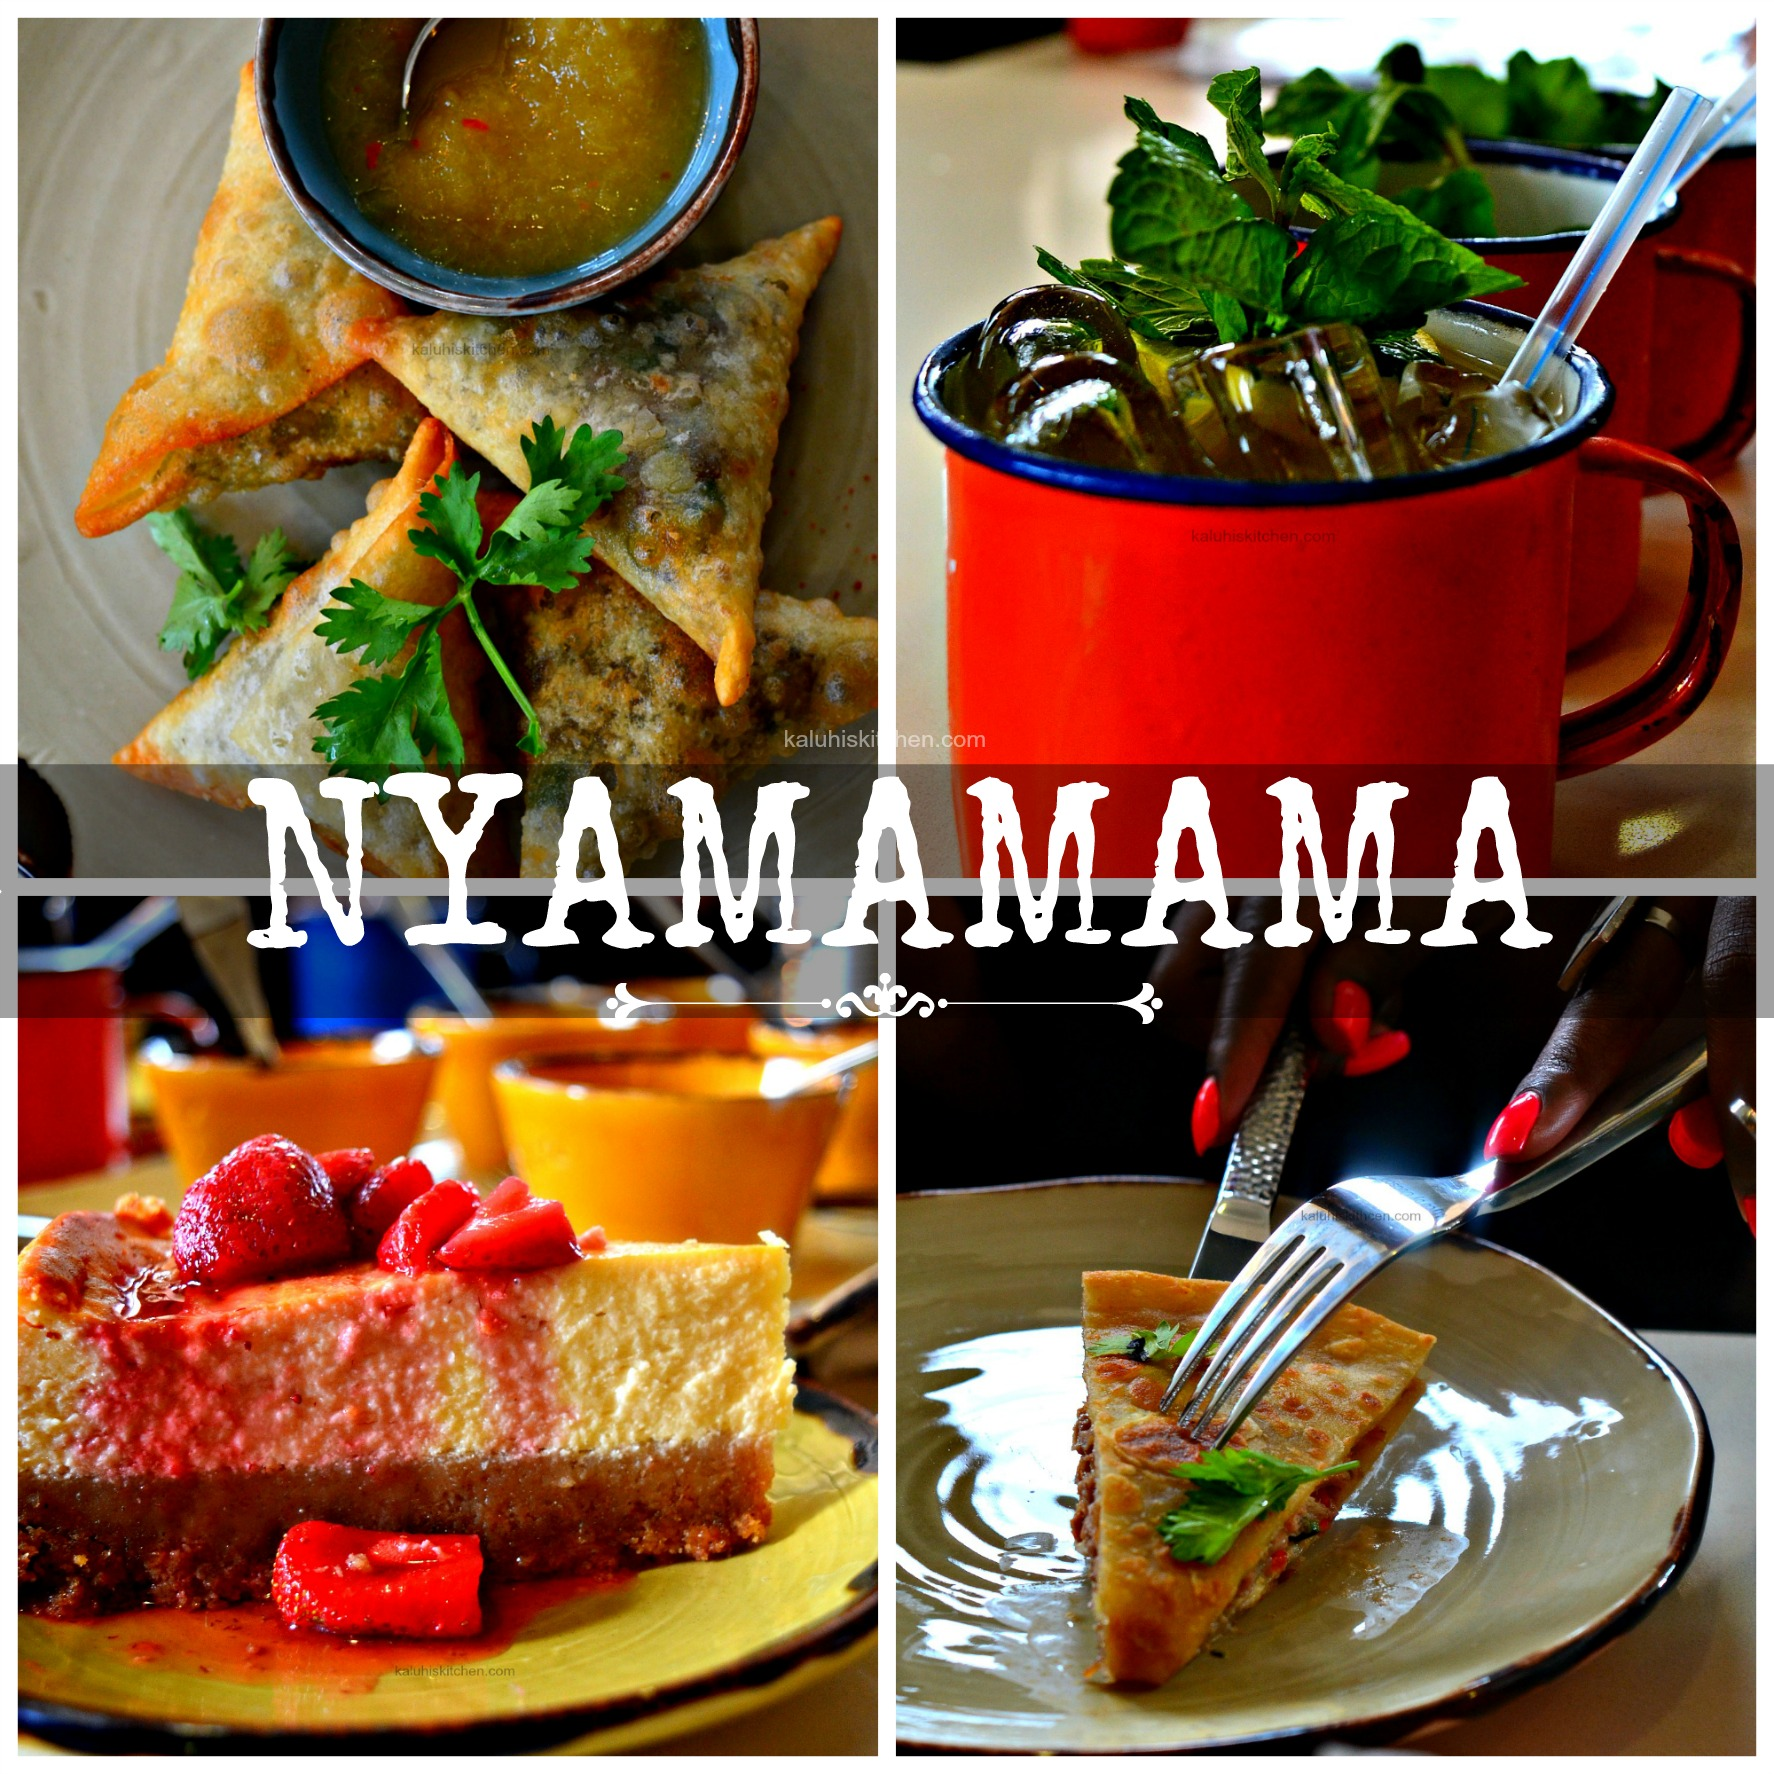 nyamamama at yaya center nairobi serves authentic kenyan food with the best amnbience it has to offer_kaluhiskitchen.com